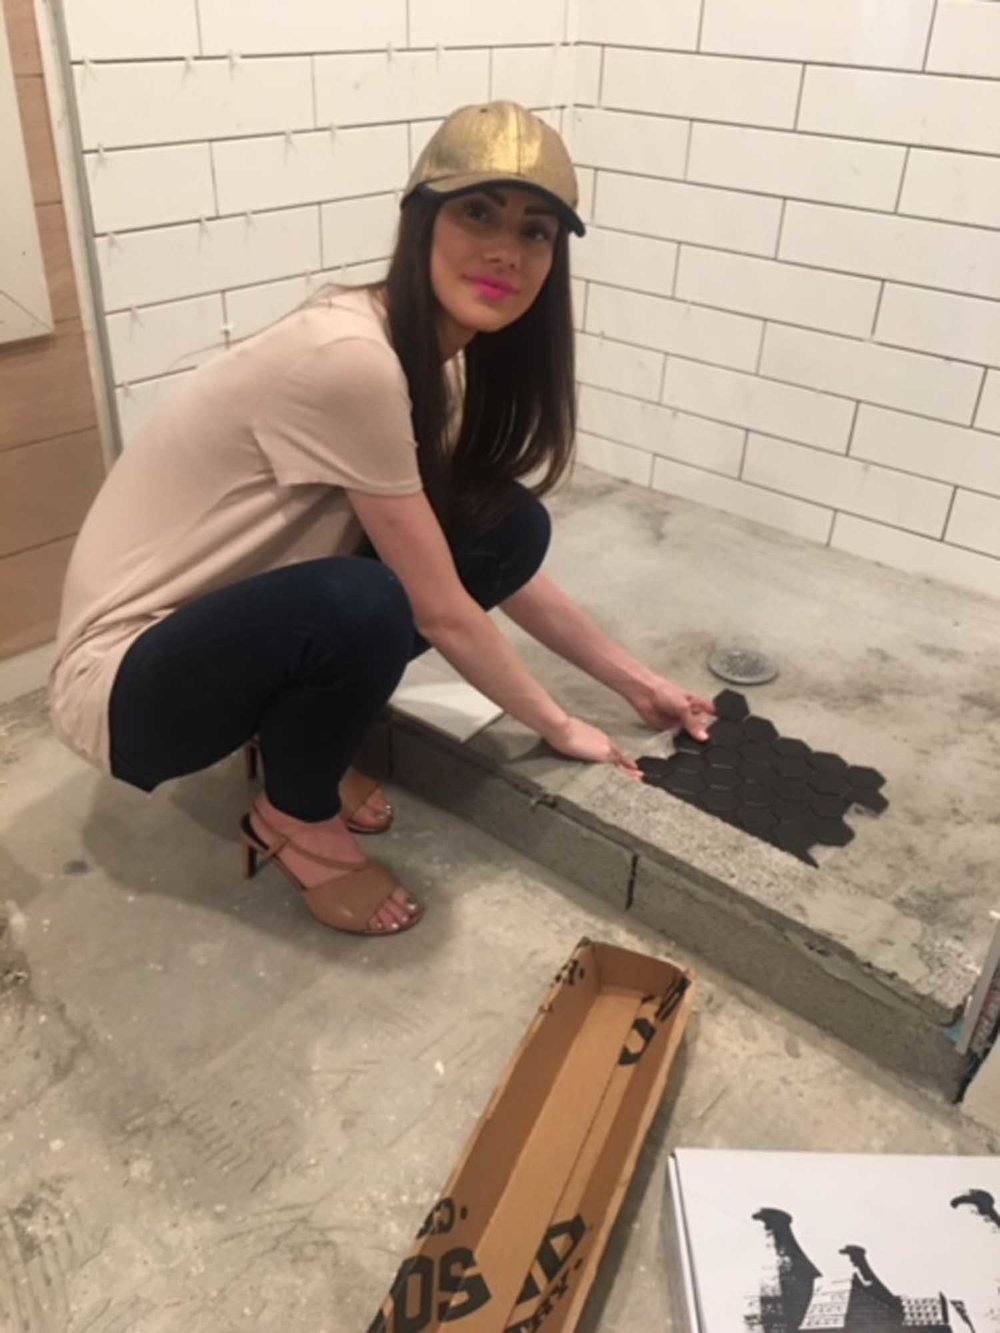 Woman working in room renovation